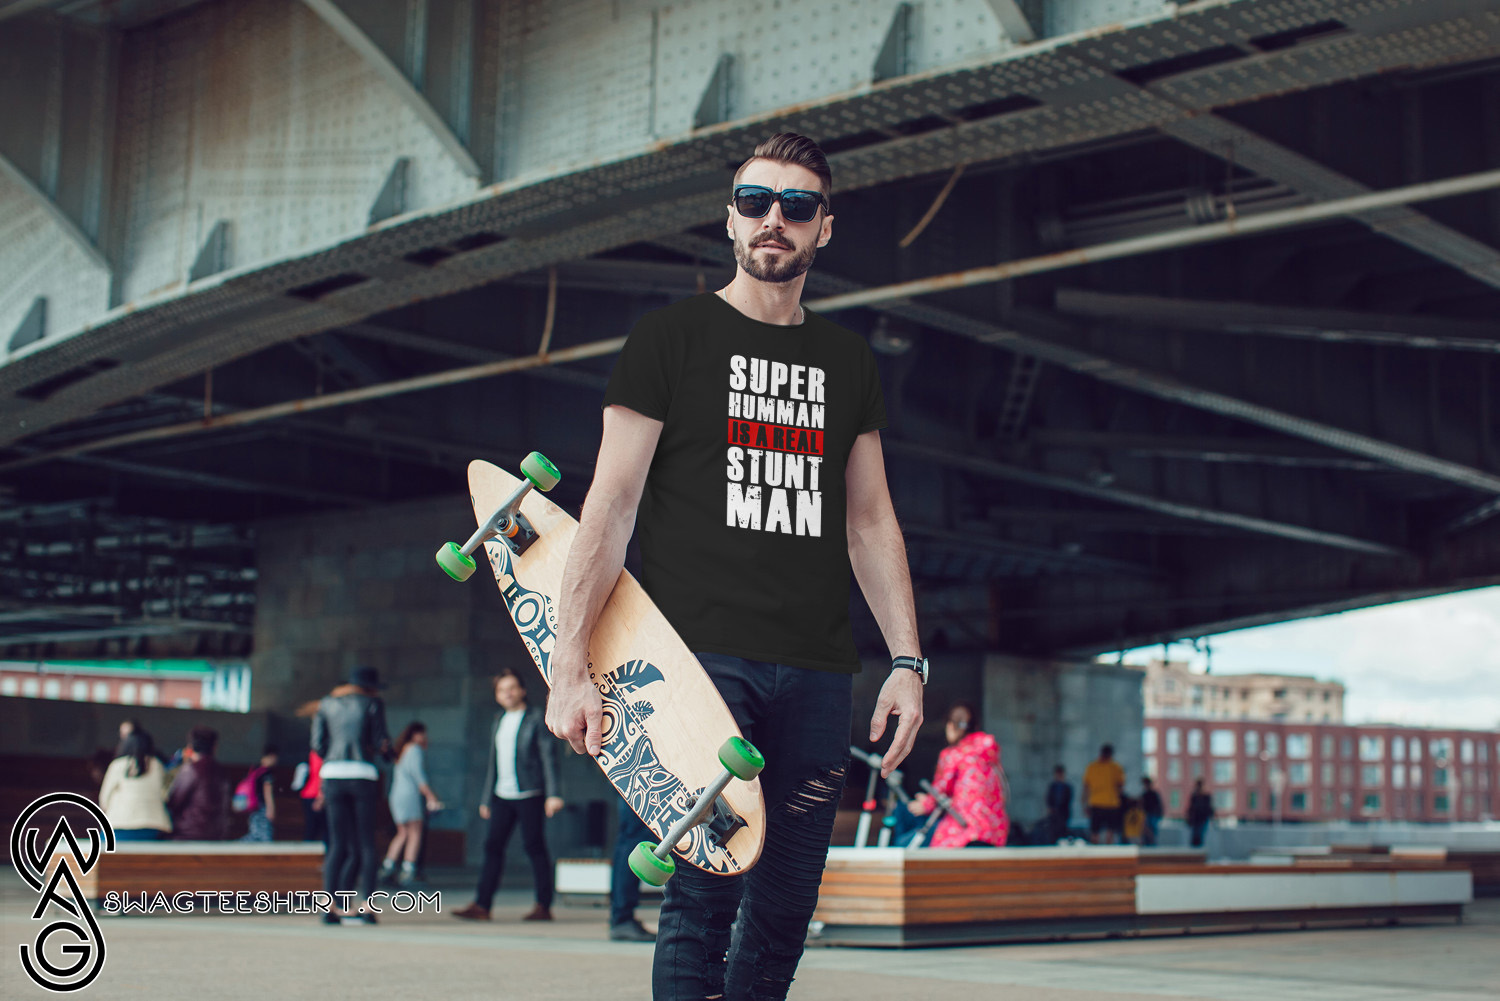 Super Humman Is A Real Stunt Man Shirt And Women S Tank Top See what people look like, where they're based, and what they do. super humman is a real stunt man shirt and women s tank top